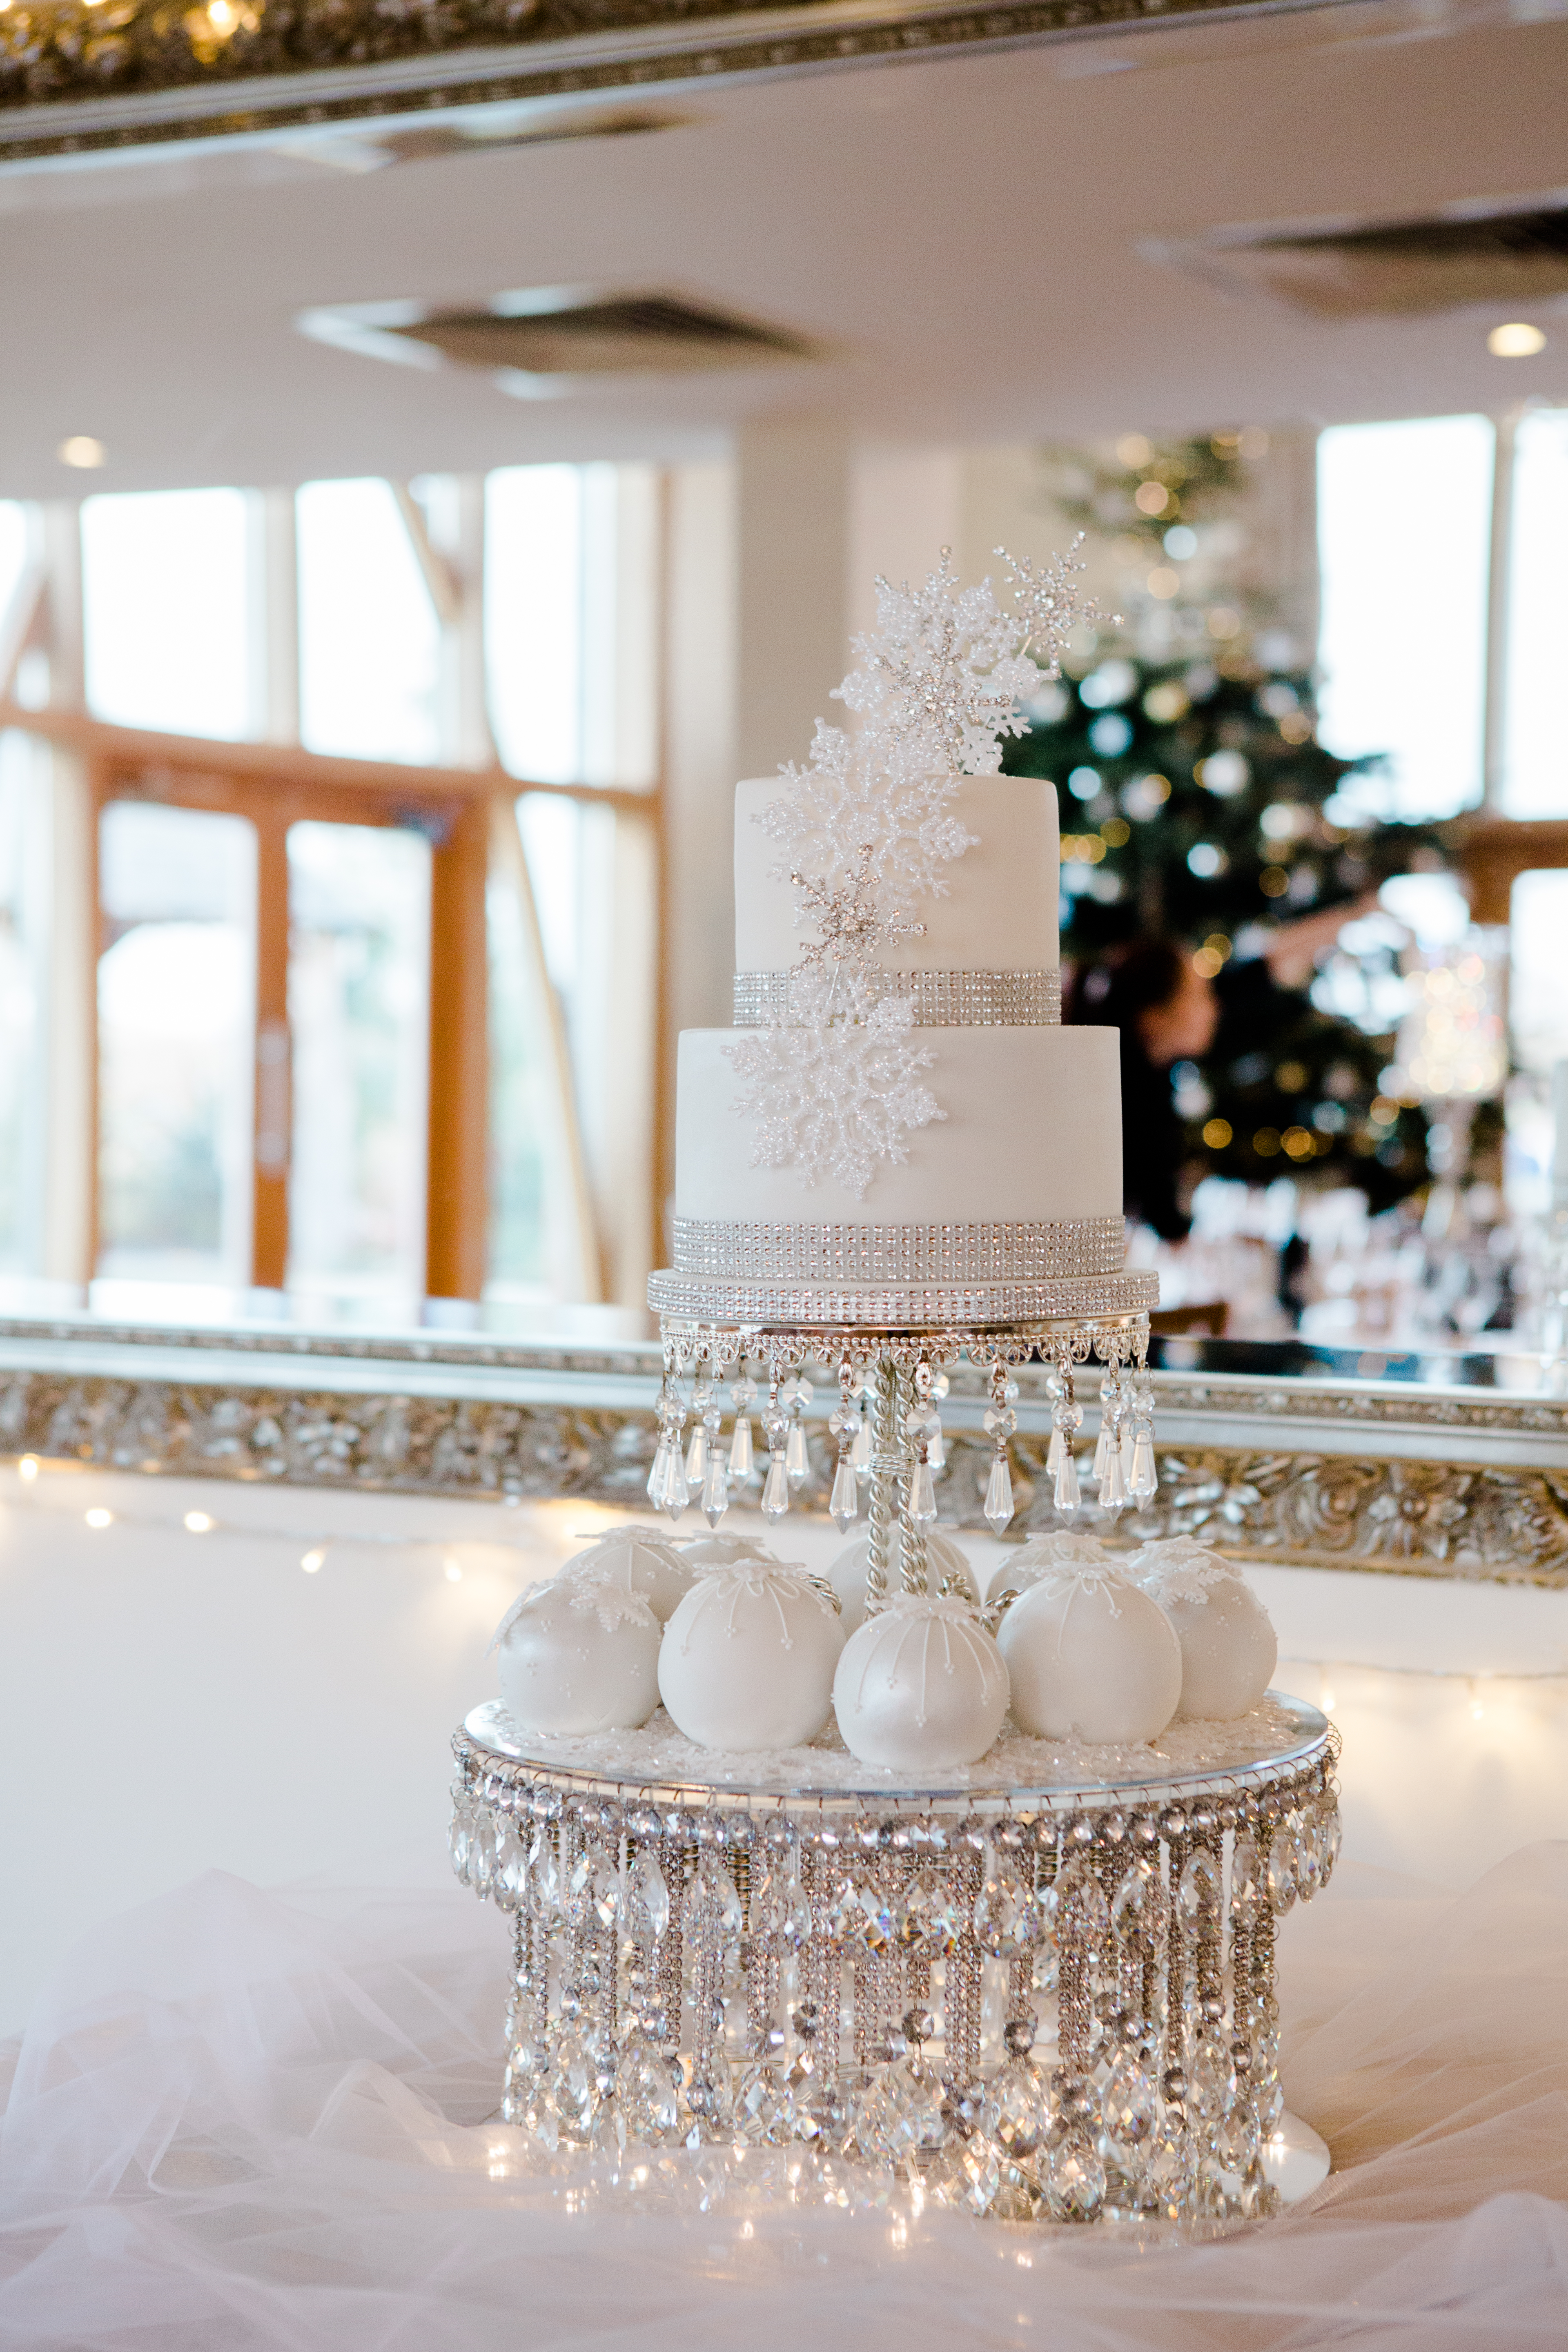 Winter wedding Mythe Barn cake white with snowflakes mini snowballs crystal cake stand with fairylights